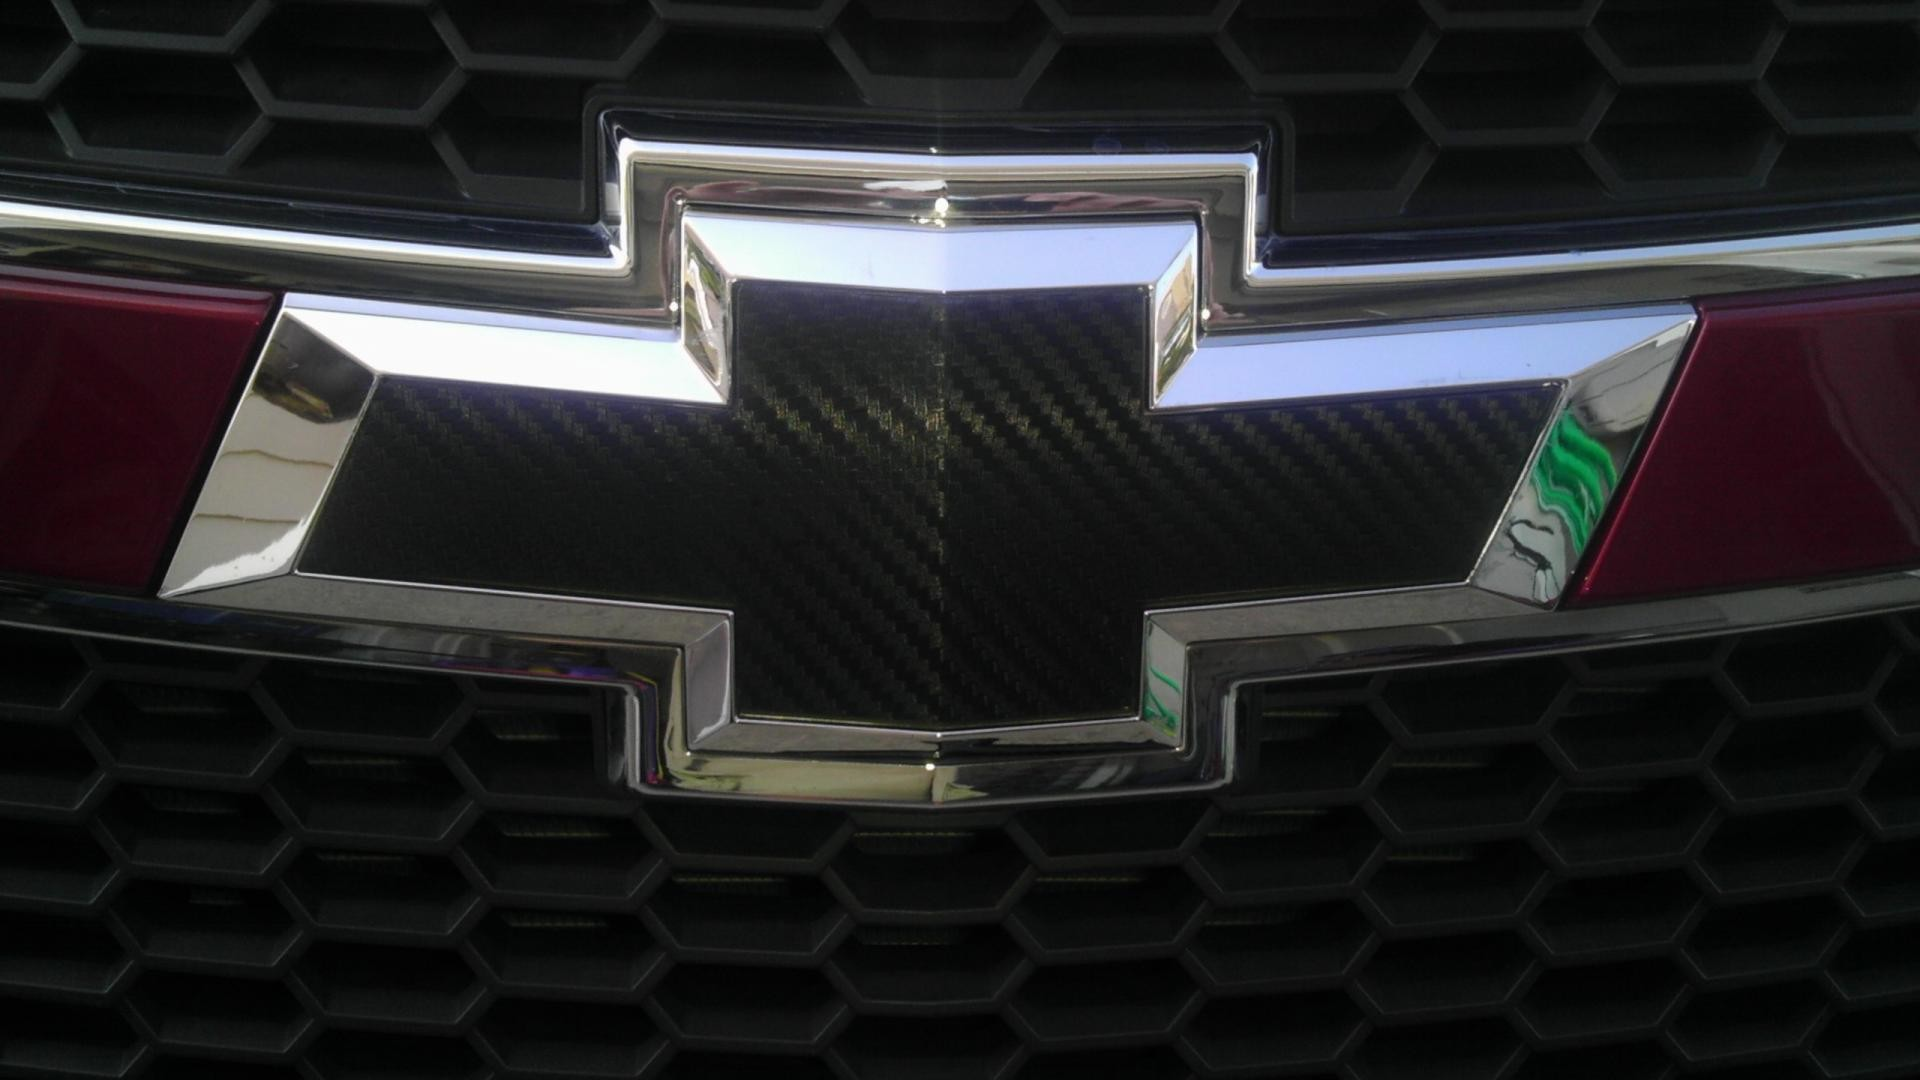 1920x1080 4. chevy-logo-wallpaper-HD4-600x338